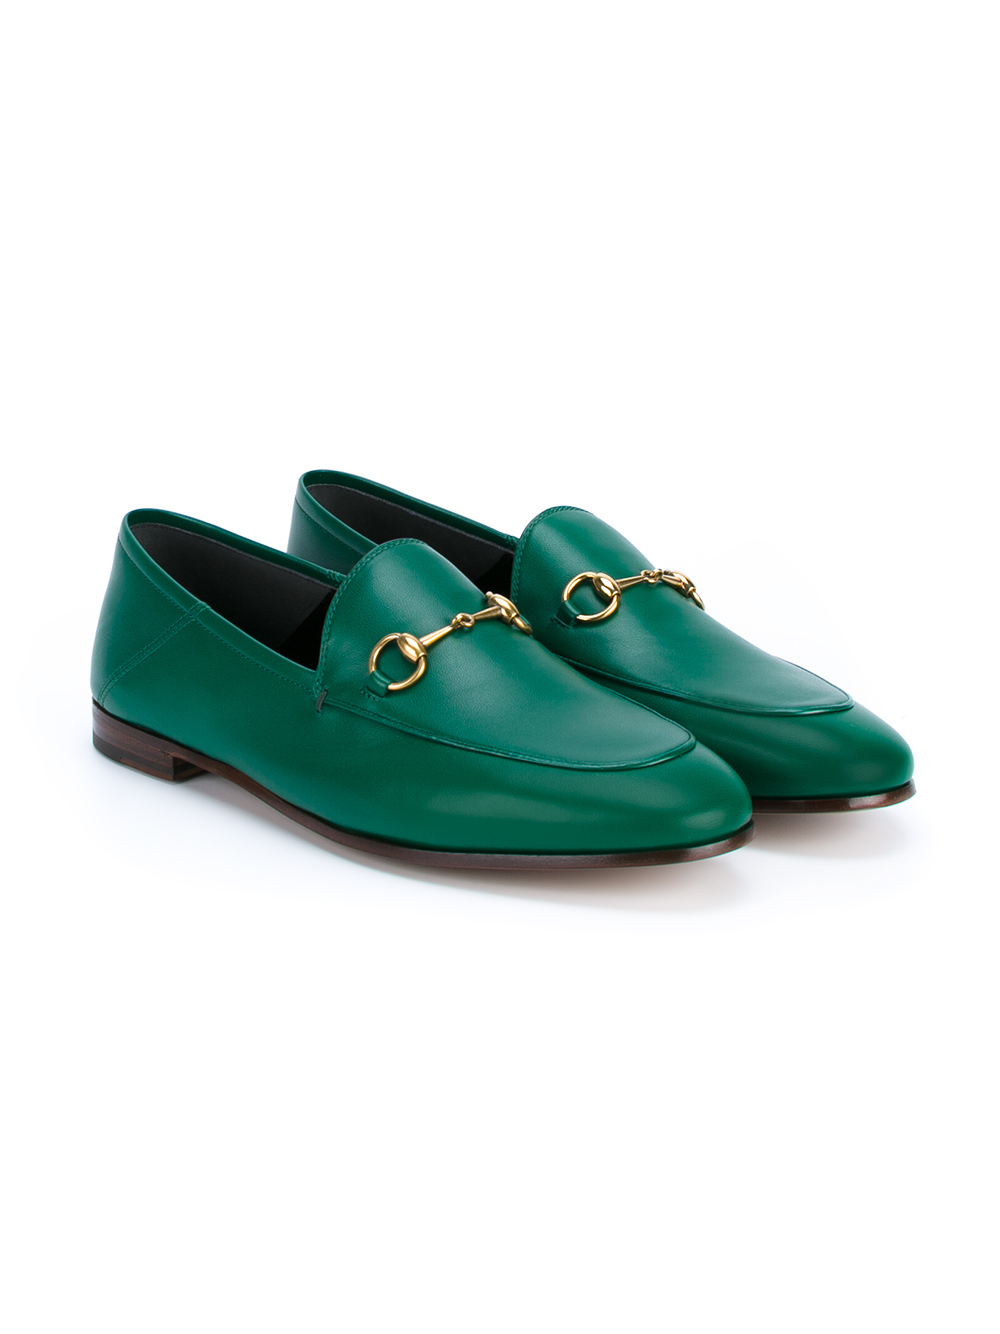 What Shoes To Wear With Green Dress